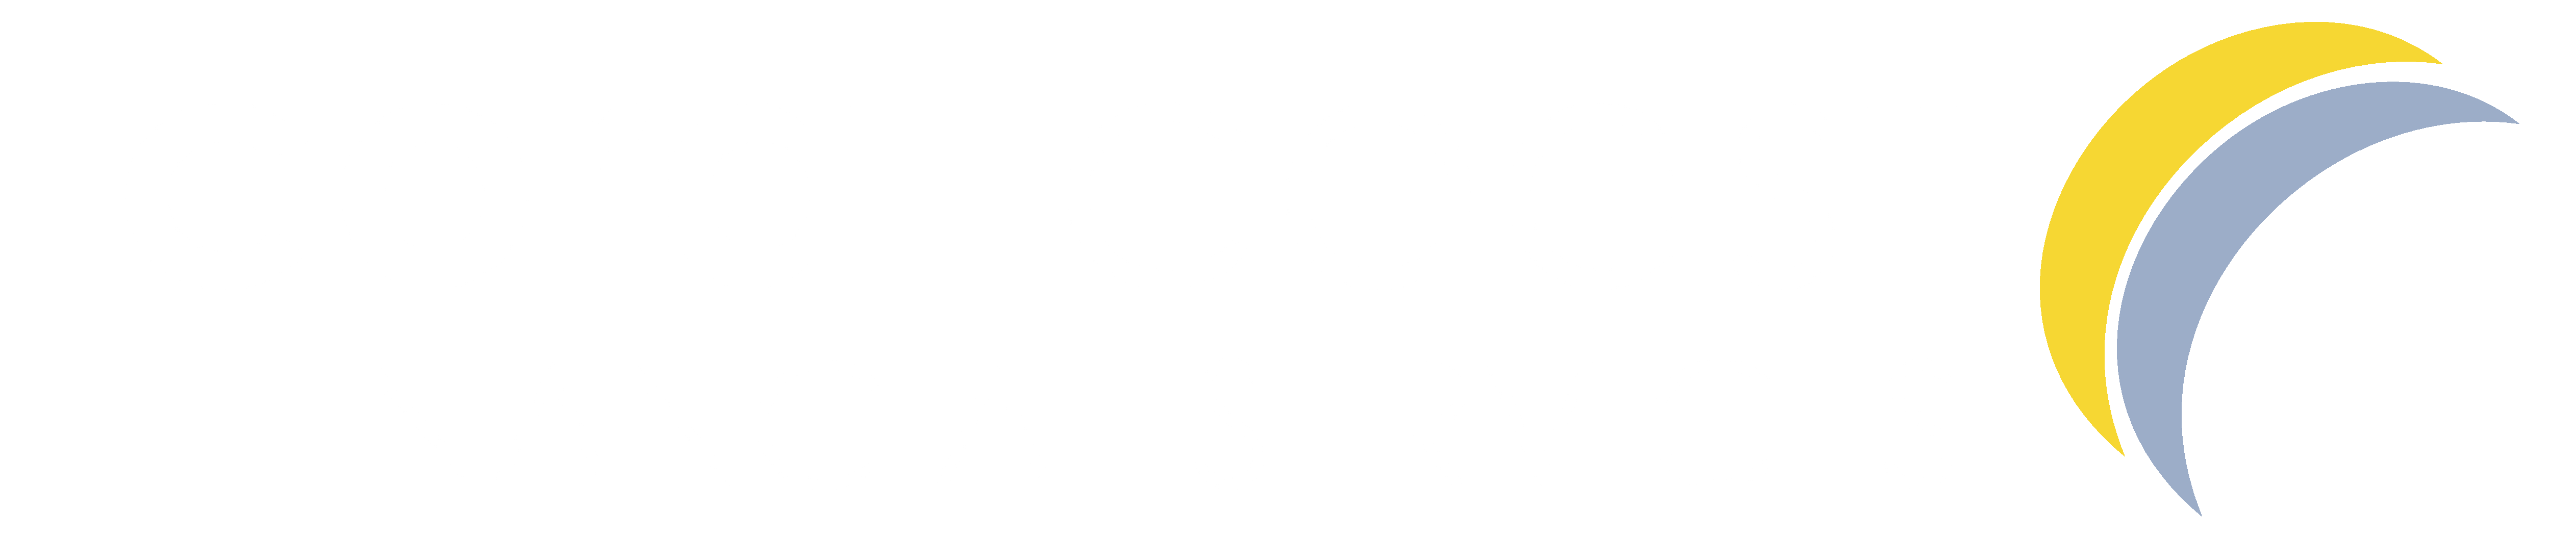 Coral Coast Financial Services logo